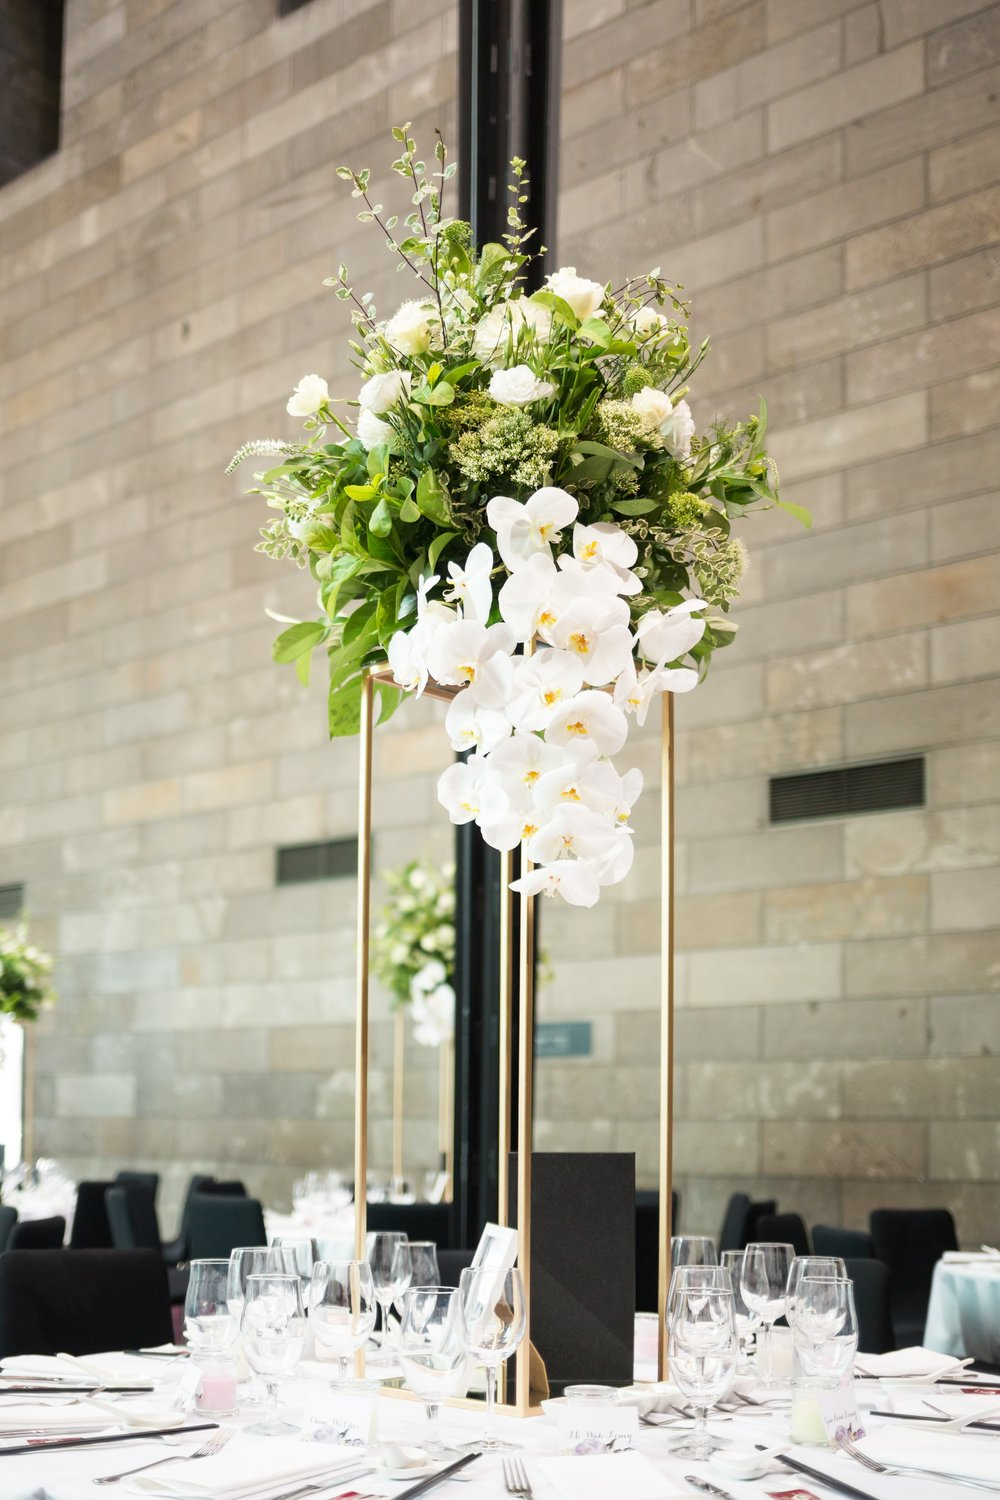 weddingideas, flowerstands, wedding, tablecentrepieces, bridetobe, bride, beautifulweddingmelbourne, weddinghiremelbourne, melbourne, nationalgalleryofvictoria, goldwedding.jpg